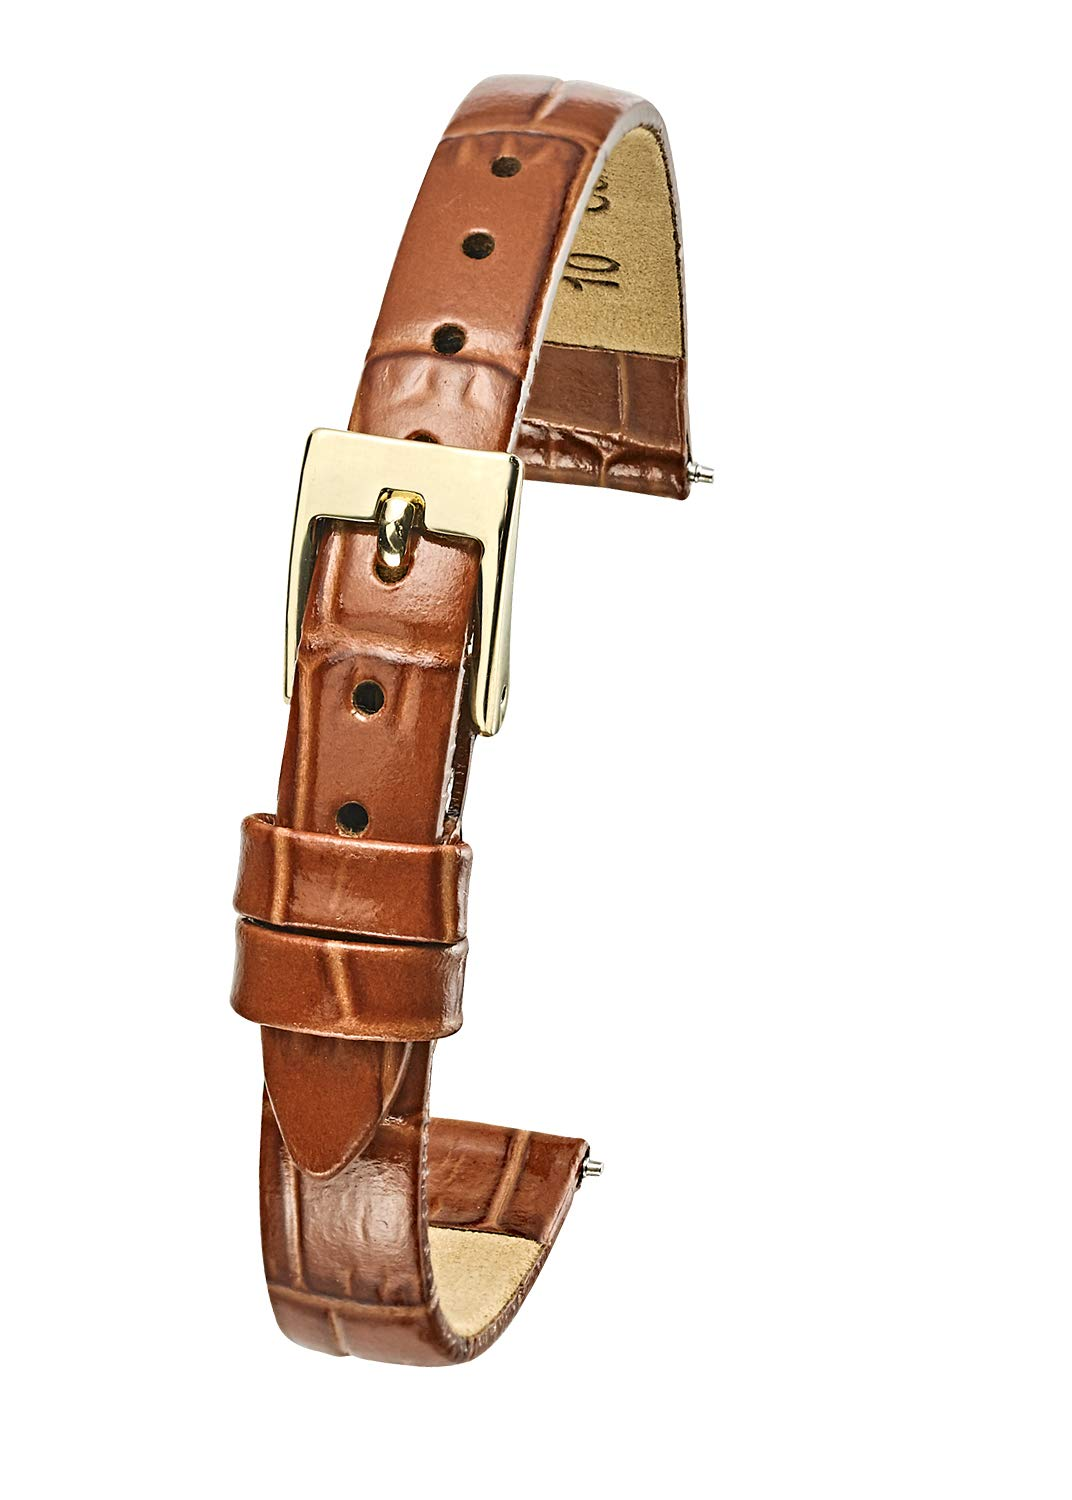 Genuine Leather Watch Band Strap in Shiny Alligator Grain Finish - 10mm - Brown